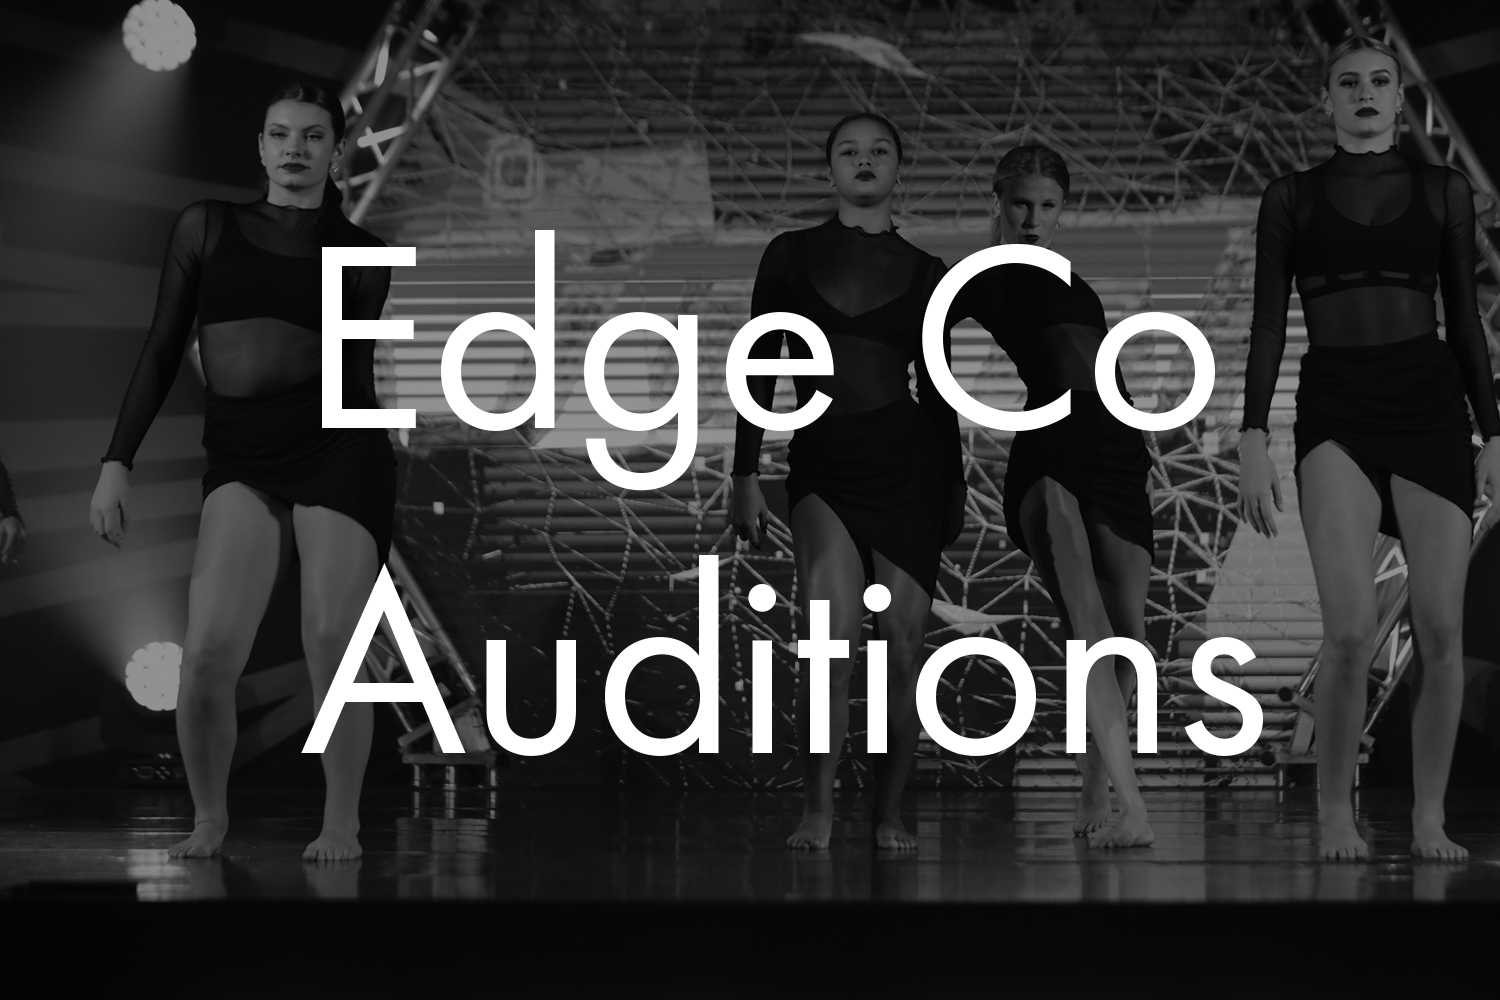 edge co 19-20 auditions.jpg